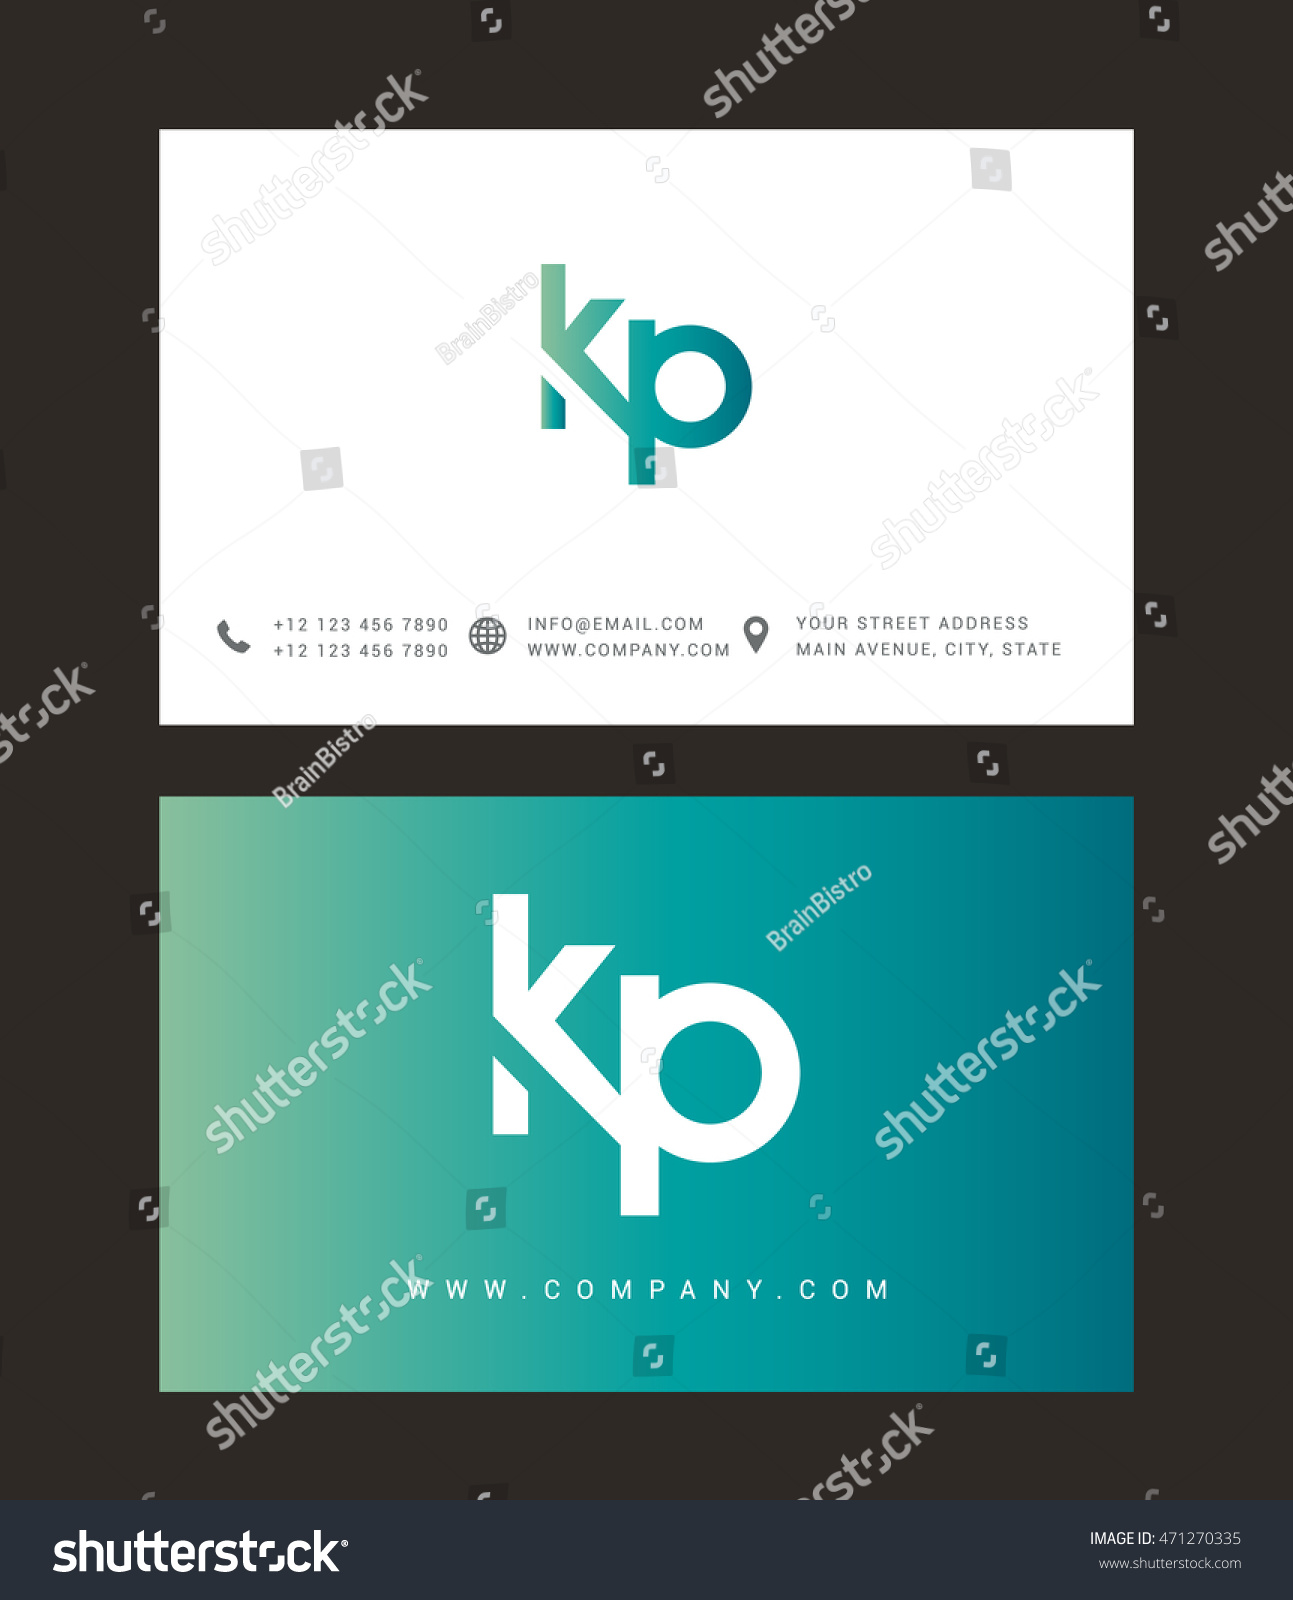 Amazing geographics business cards template images business card geographics business cards template gallery templates example solutioingenieria Images